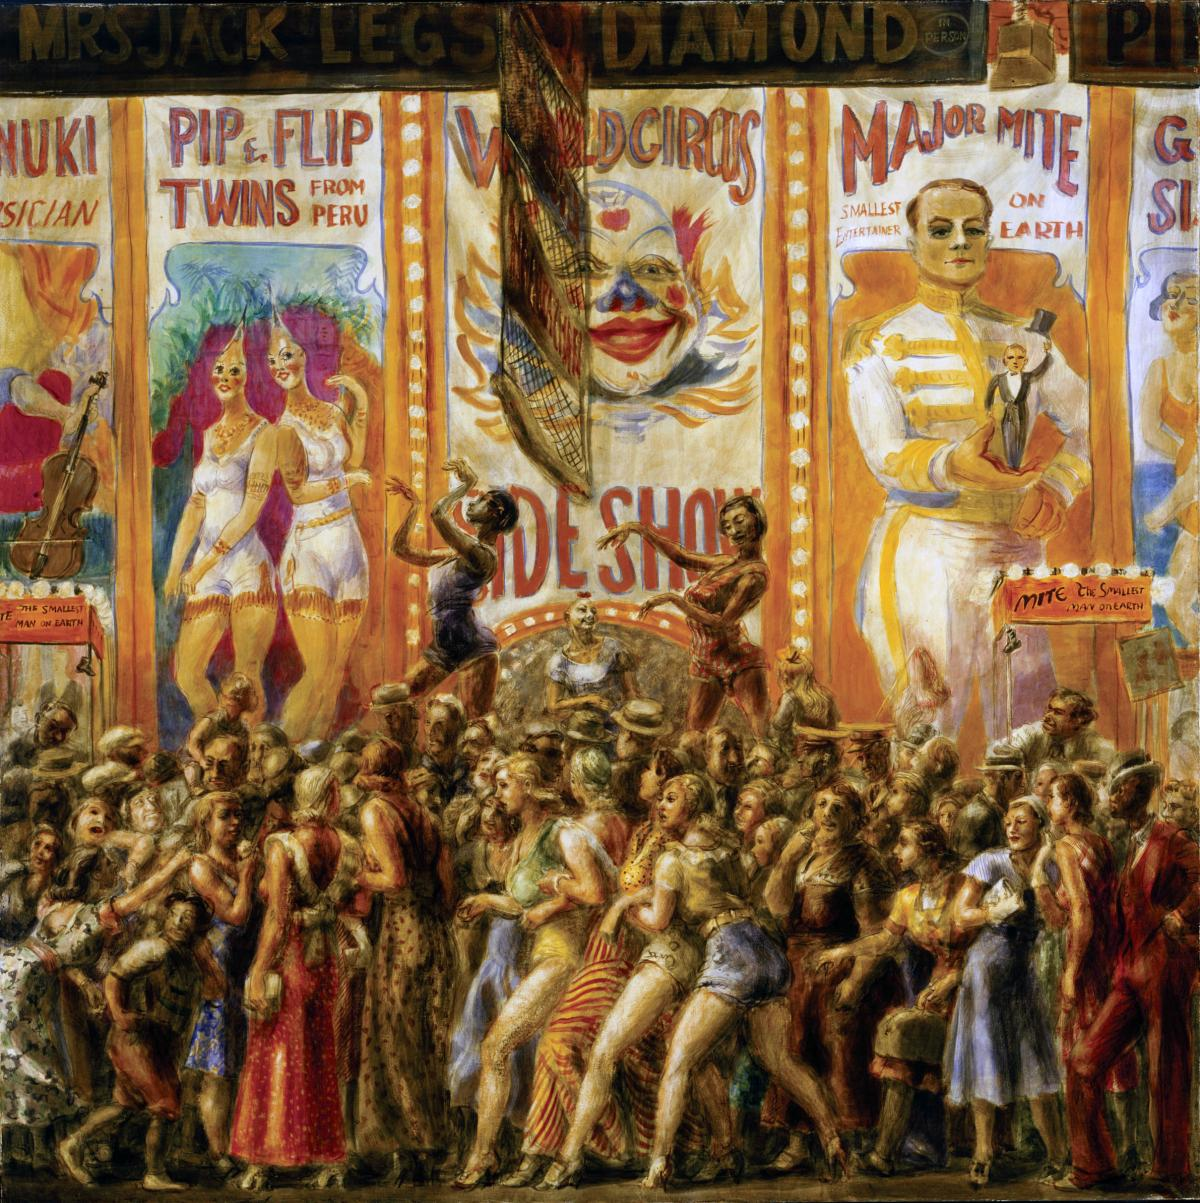 """Pip and Flip"" by Reginald Marsh, depicting a freak show, siamese twins, and a huge crowd of people"